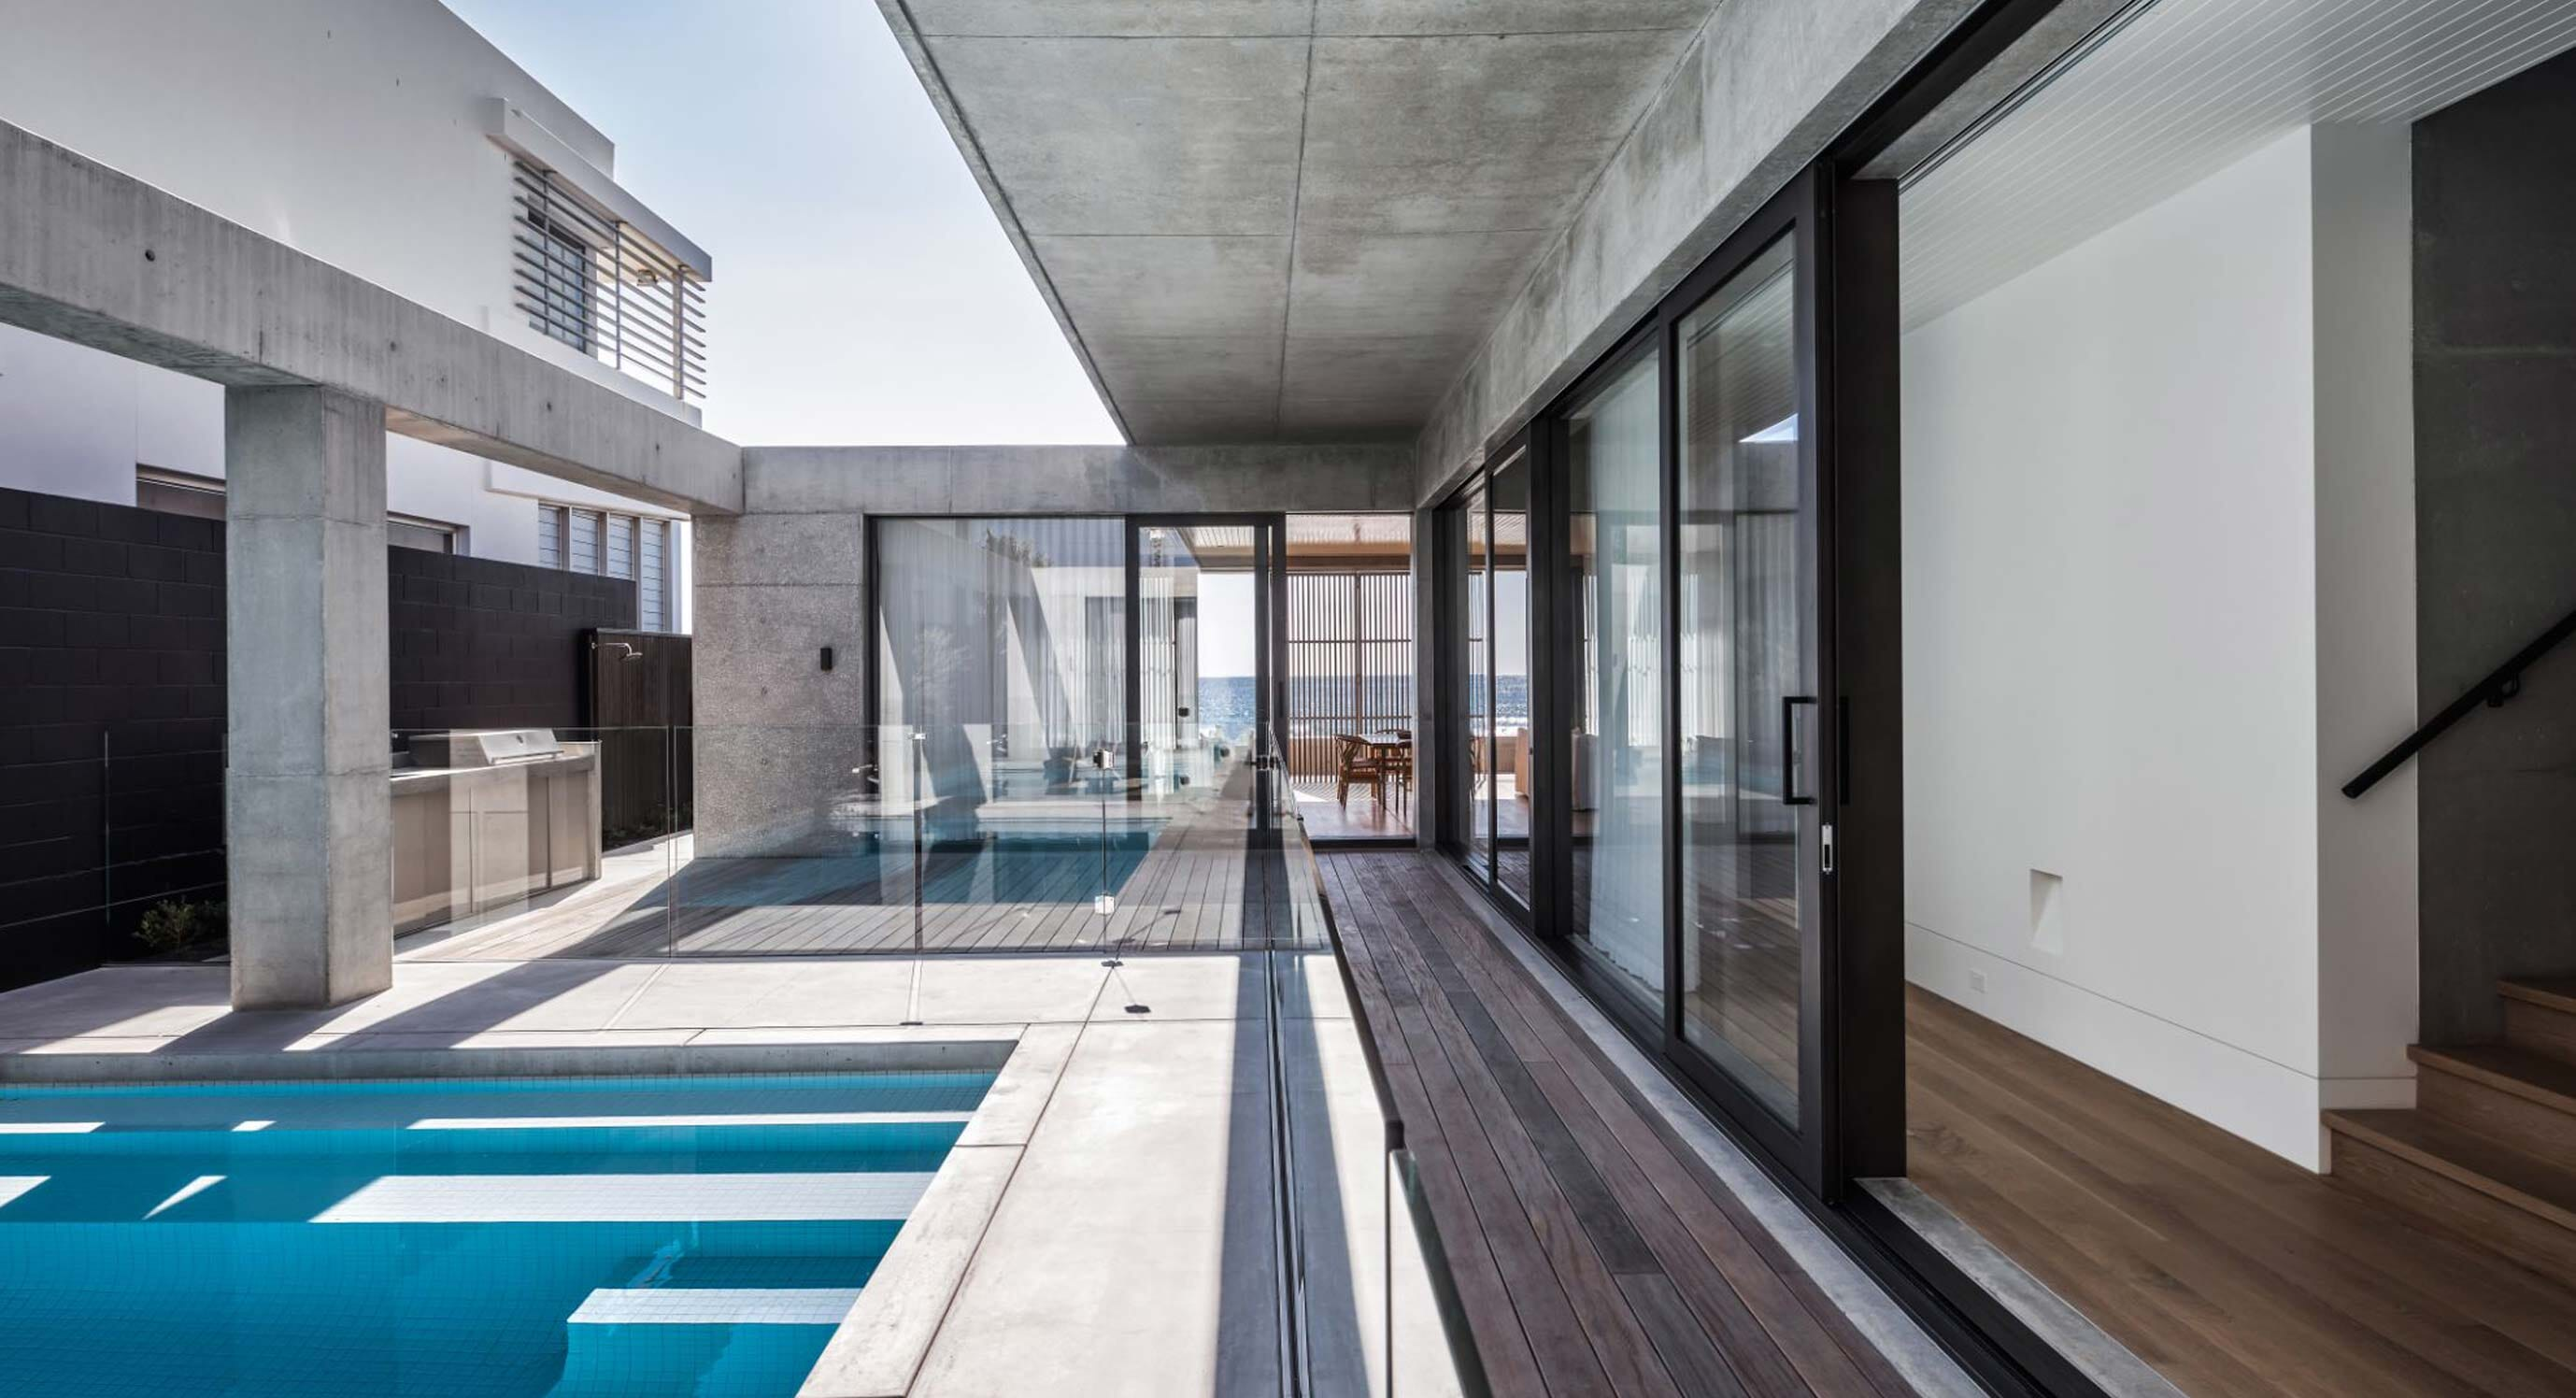 Mermaid Beach Residence Embodies A Desire For Permanence